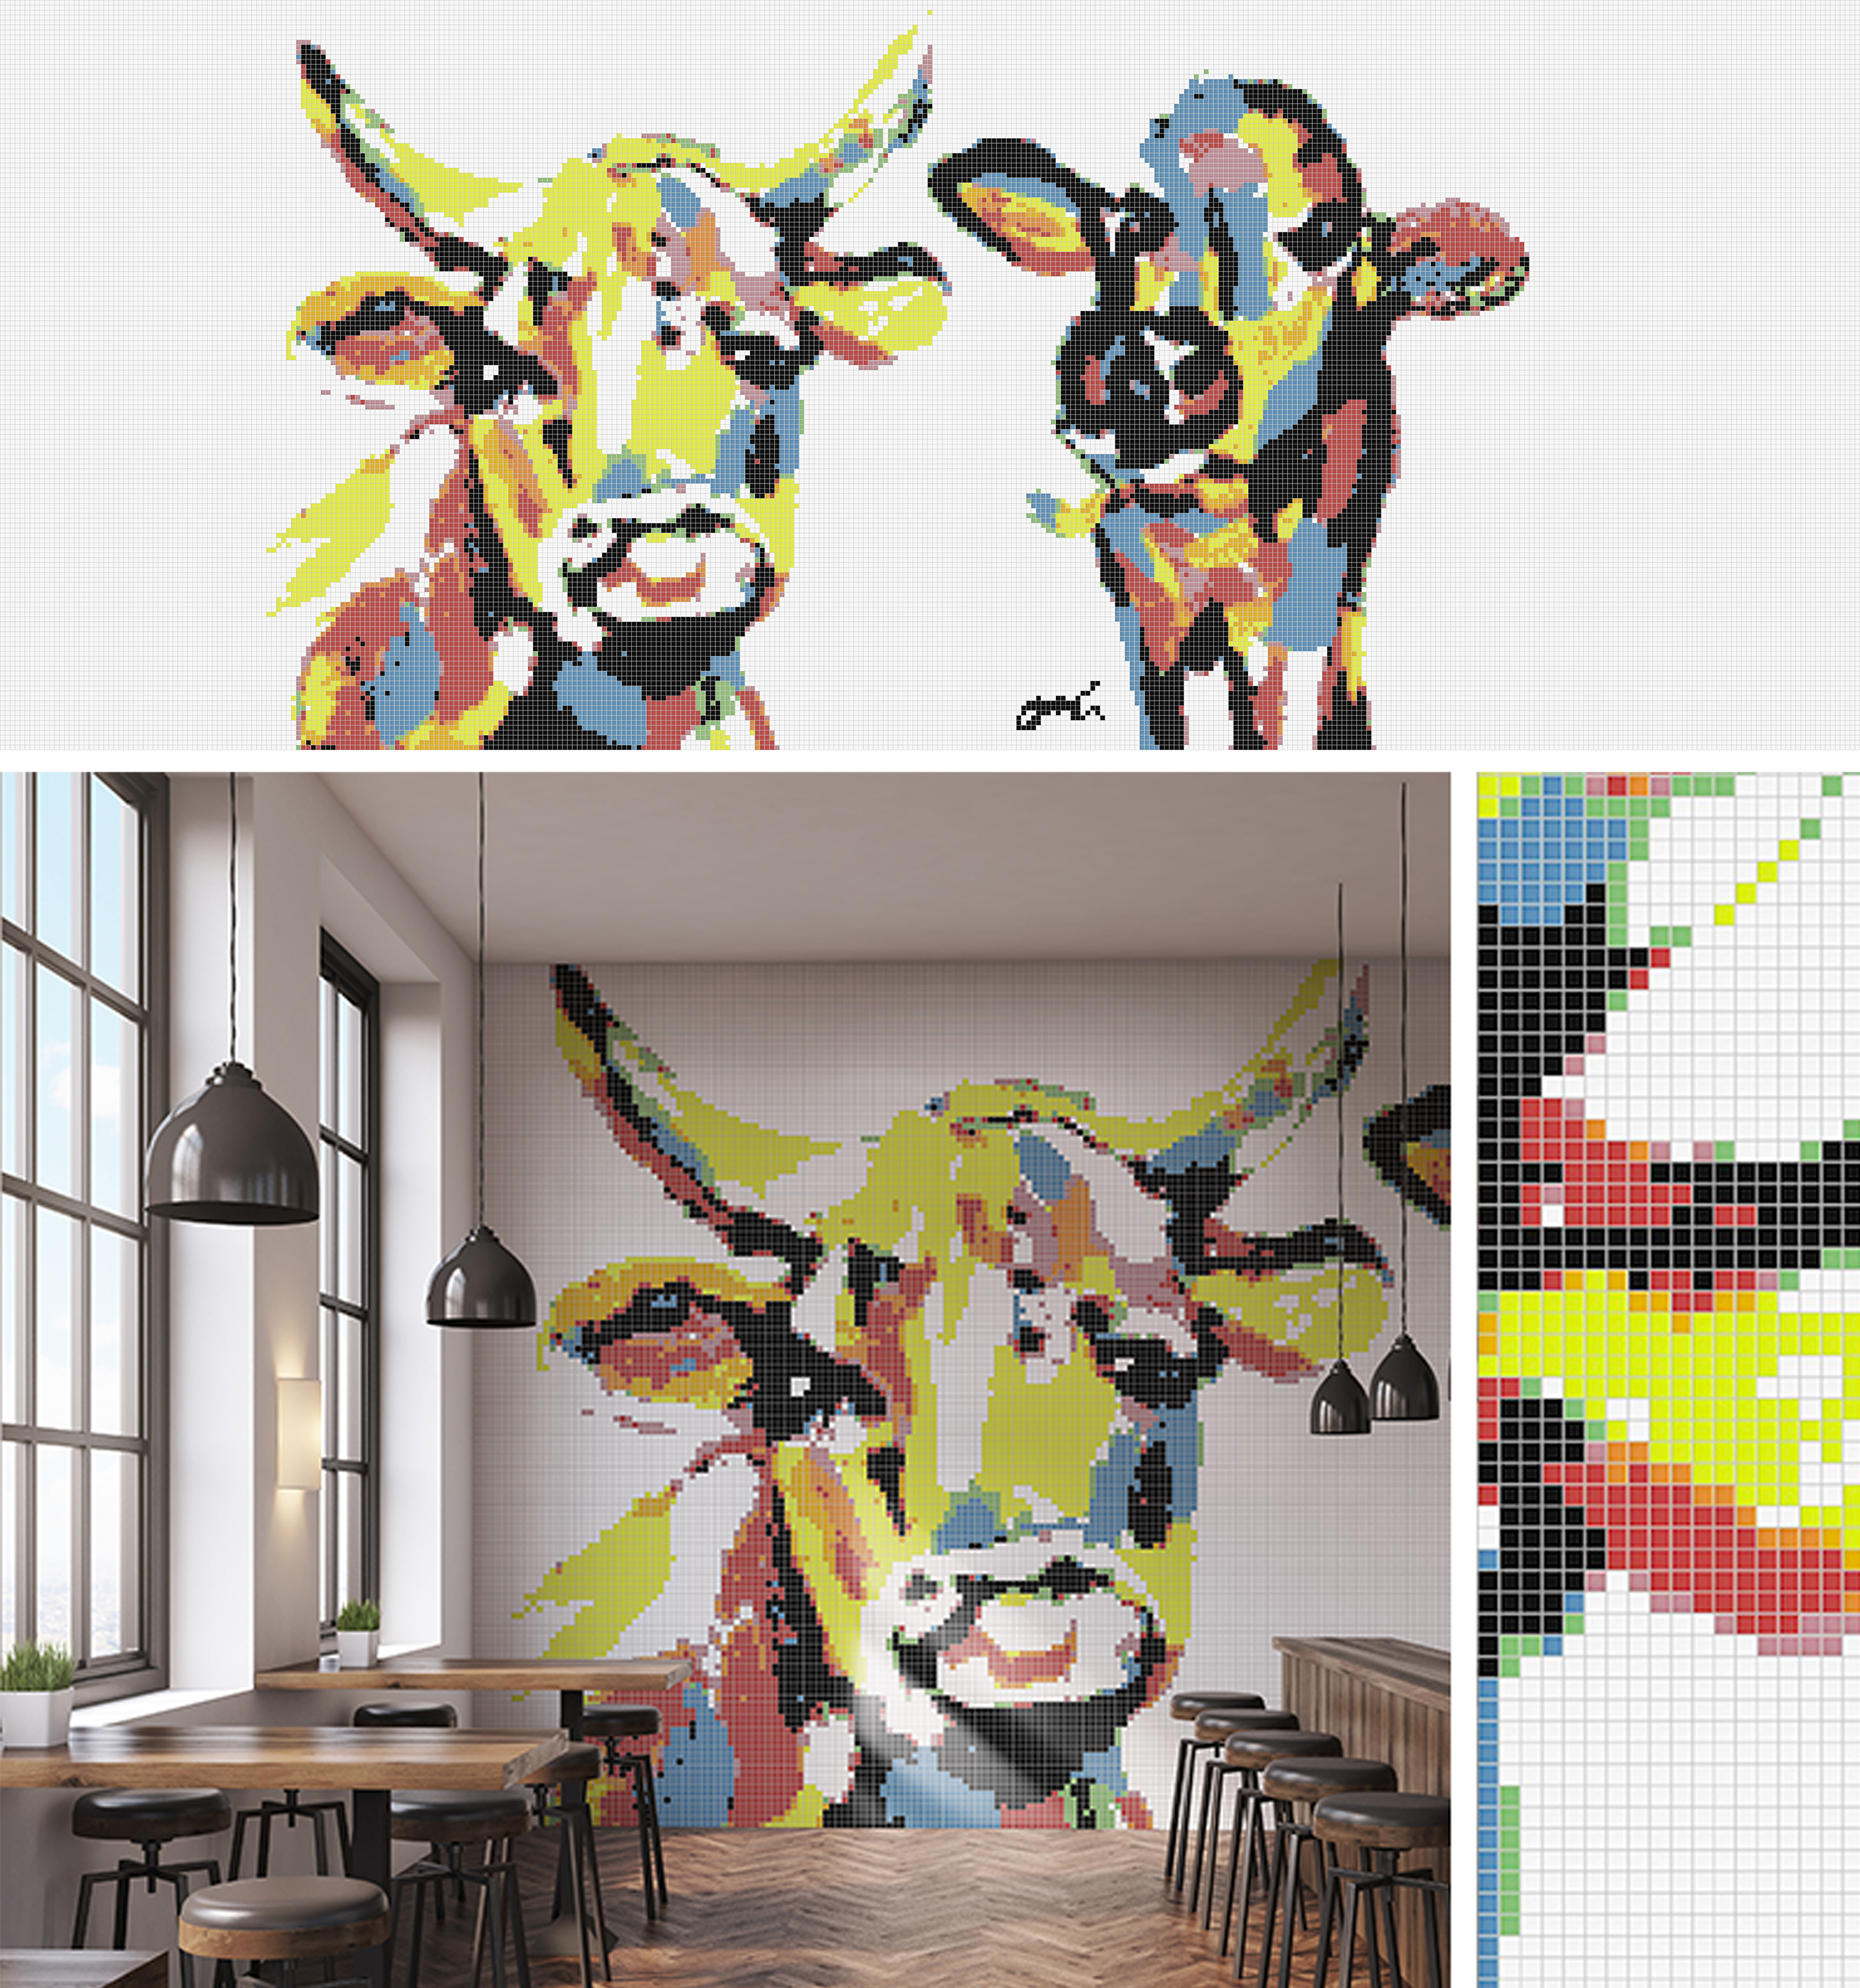 Cow imagery painting turned mosaic in cafe collage